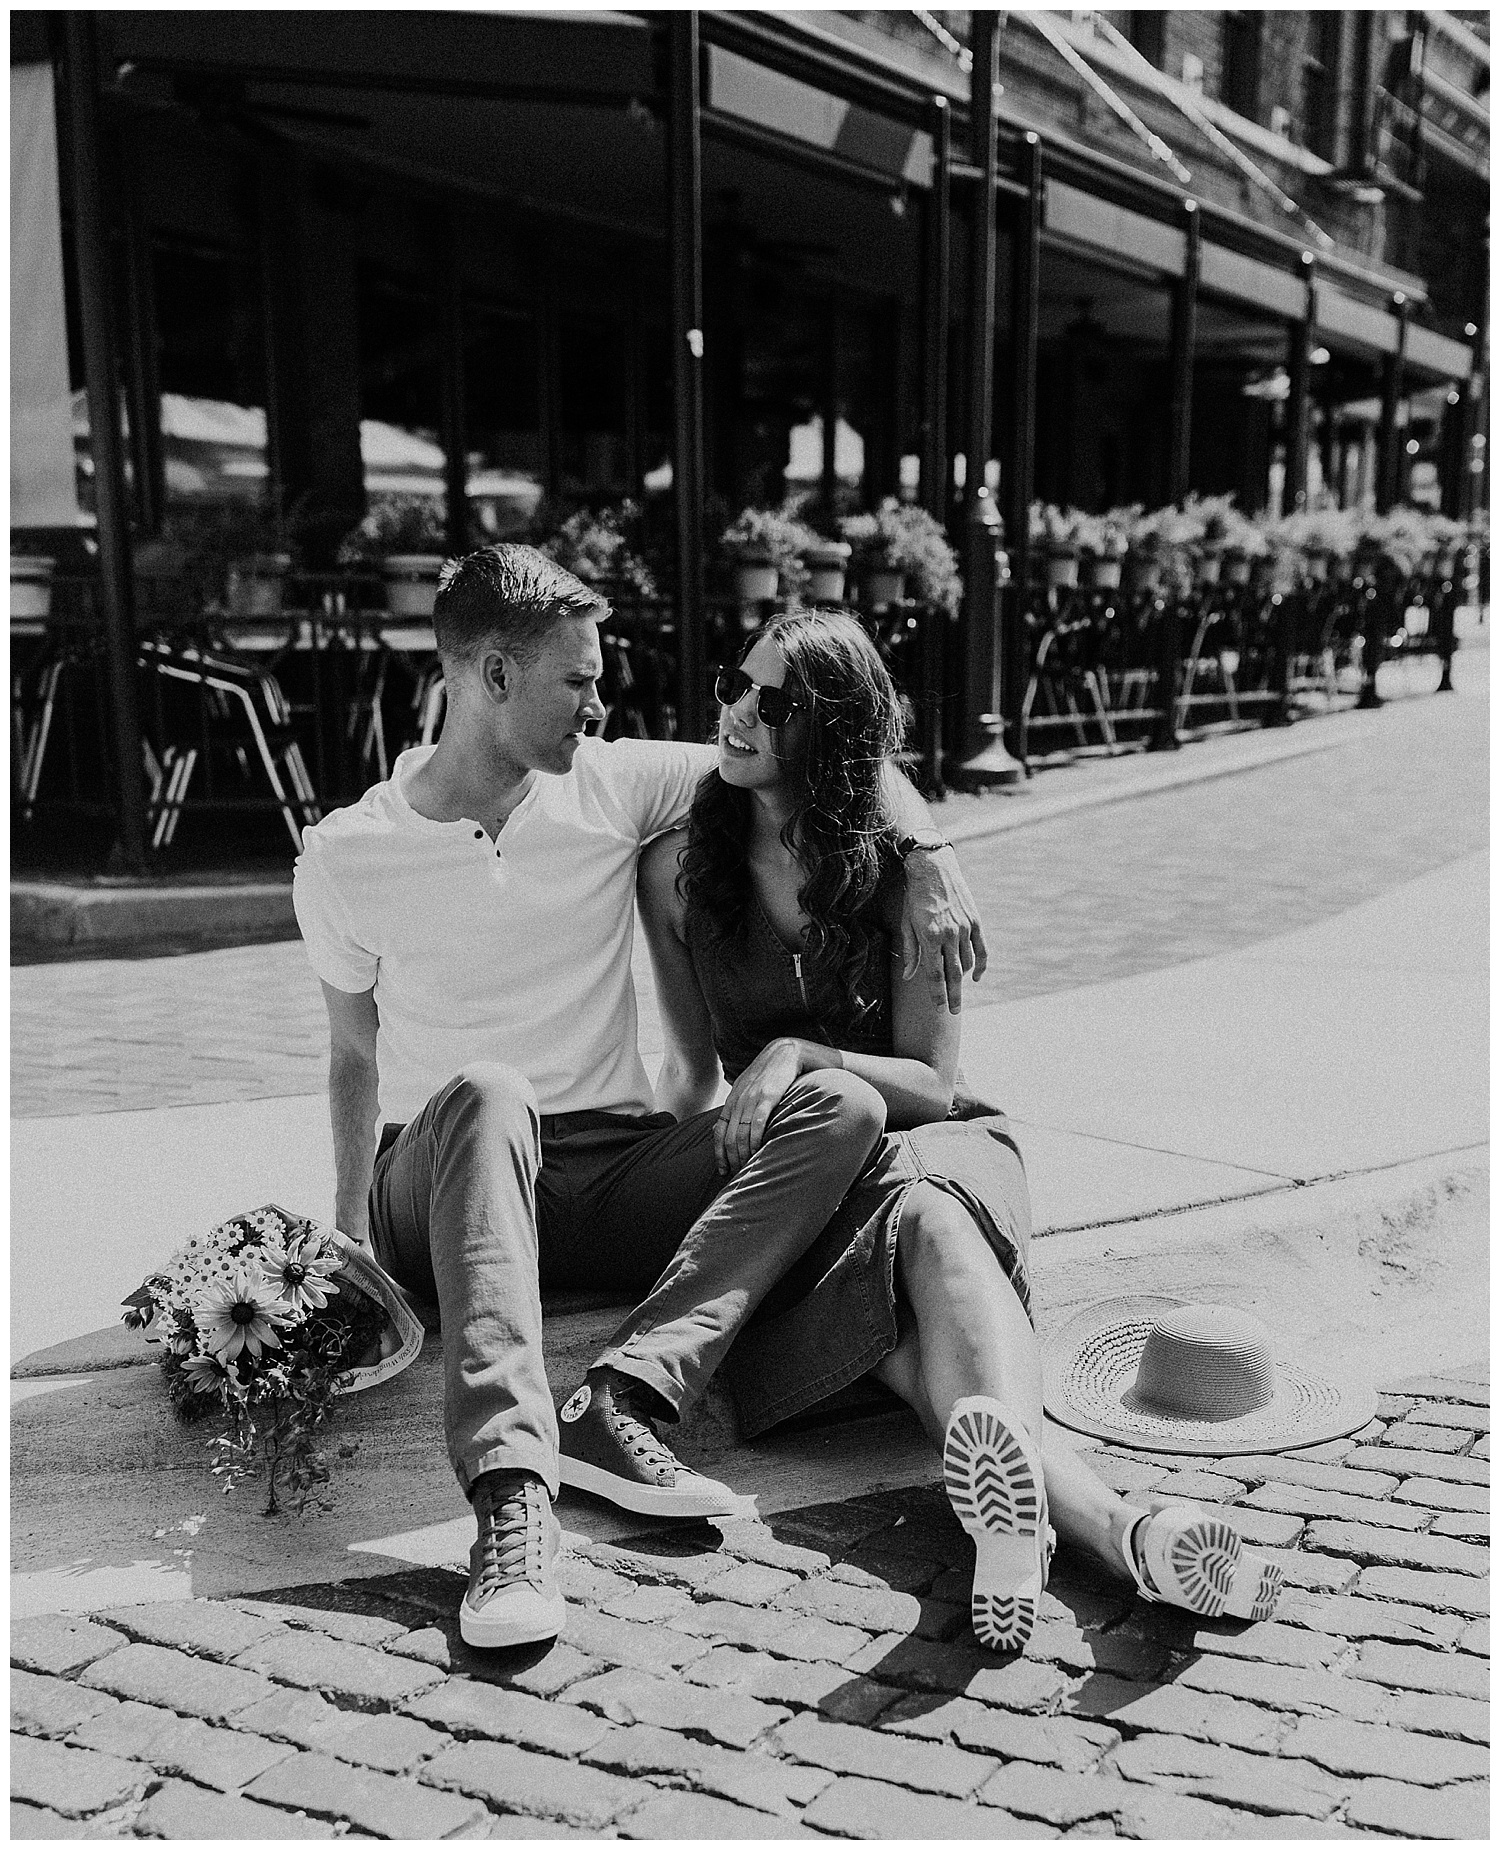 adventurous_photographer_farmers_market_engagement_session_love_midwest_travel_destination_photographer_haley_chicoine_0011.jpg